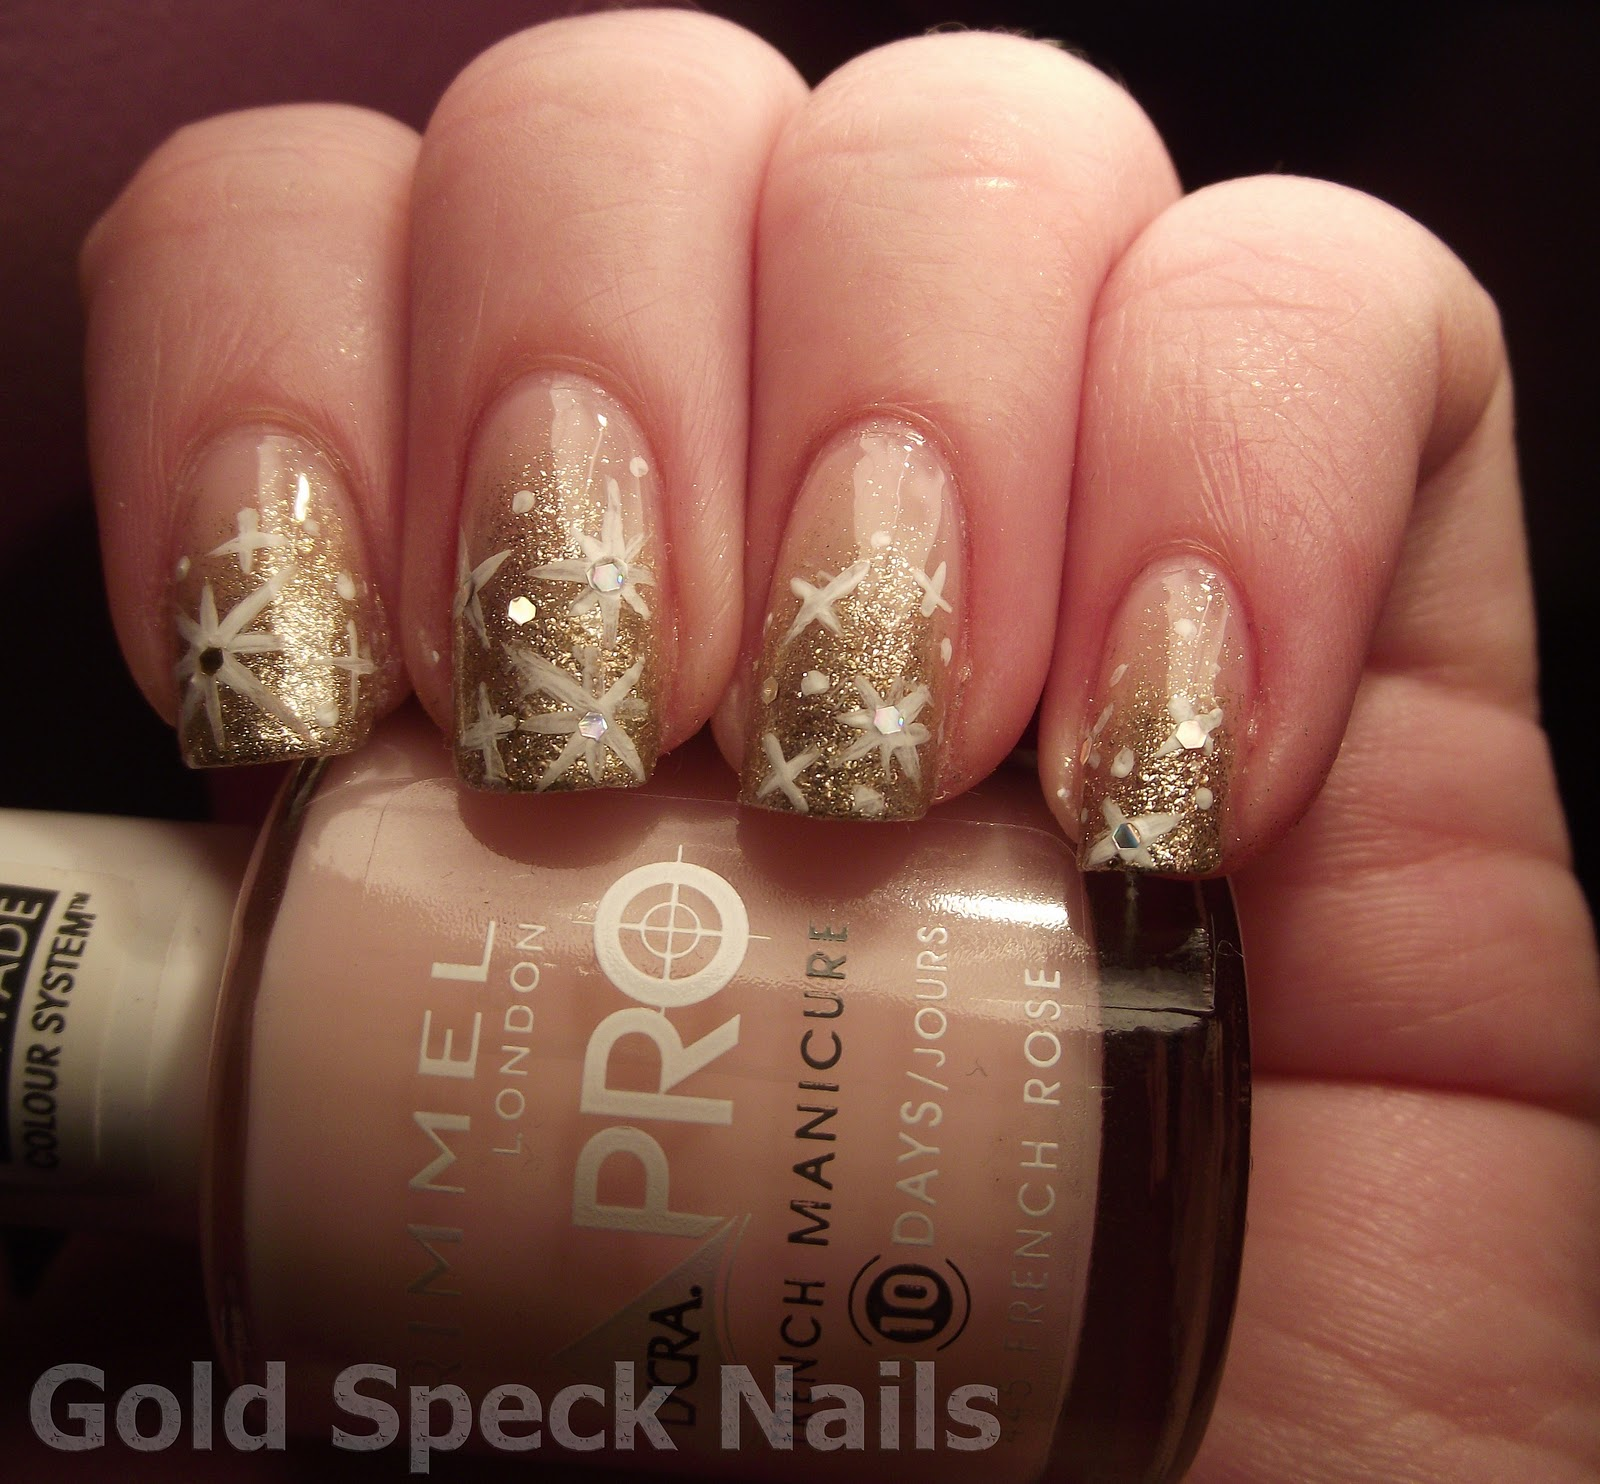 gold speck nails gold glitter sponged tips amp stars